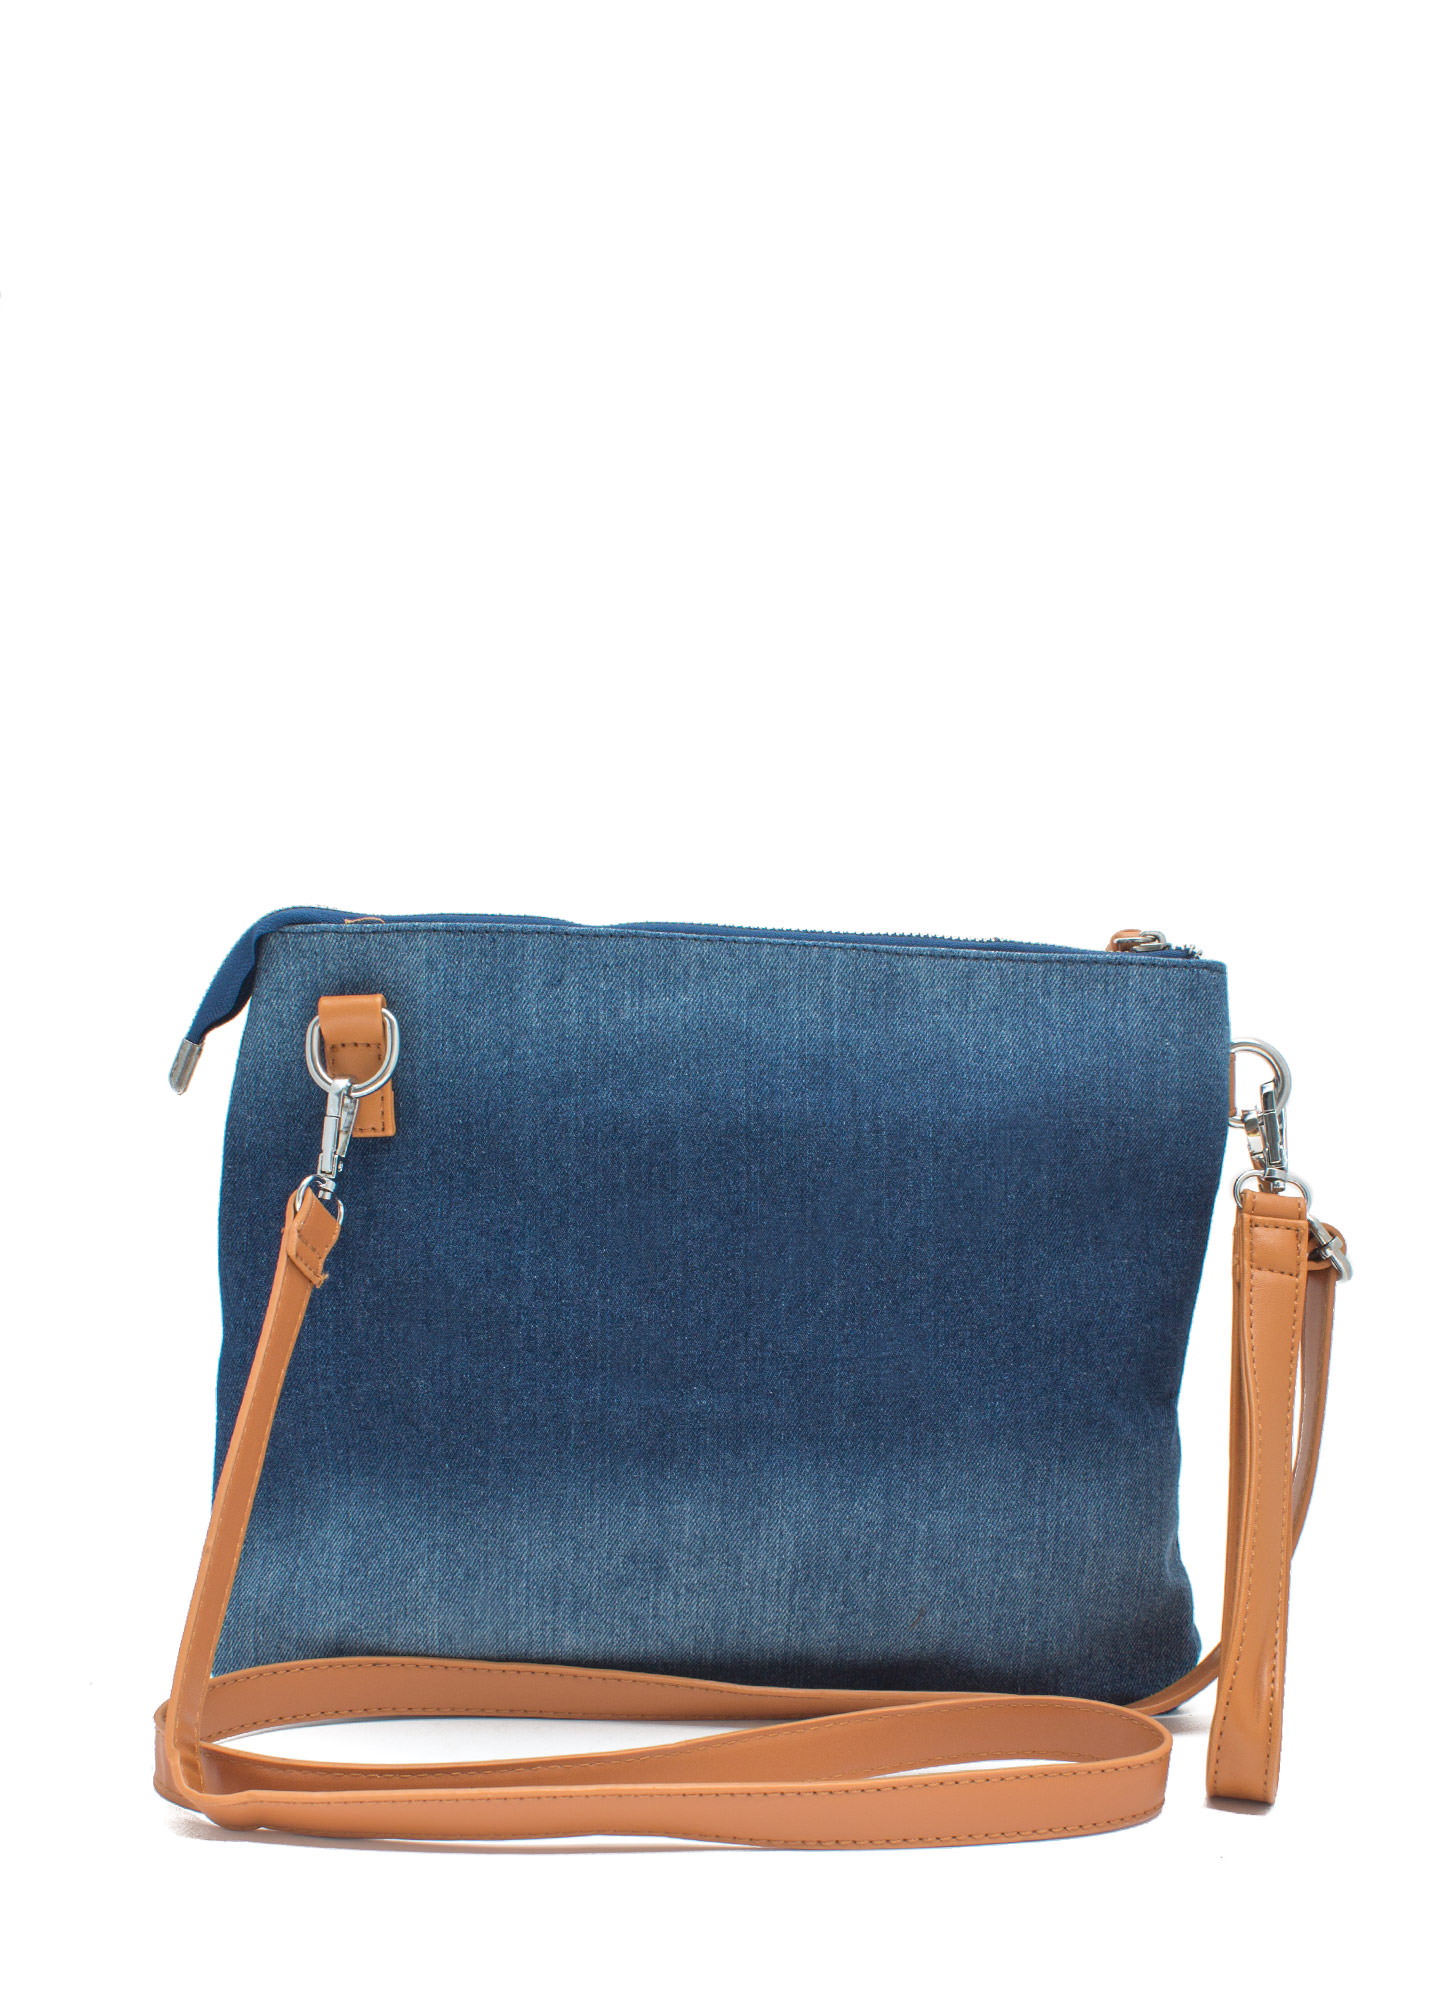 Ur Mom Goes 2 College Denim Clutch BLUE